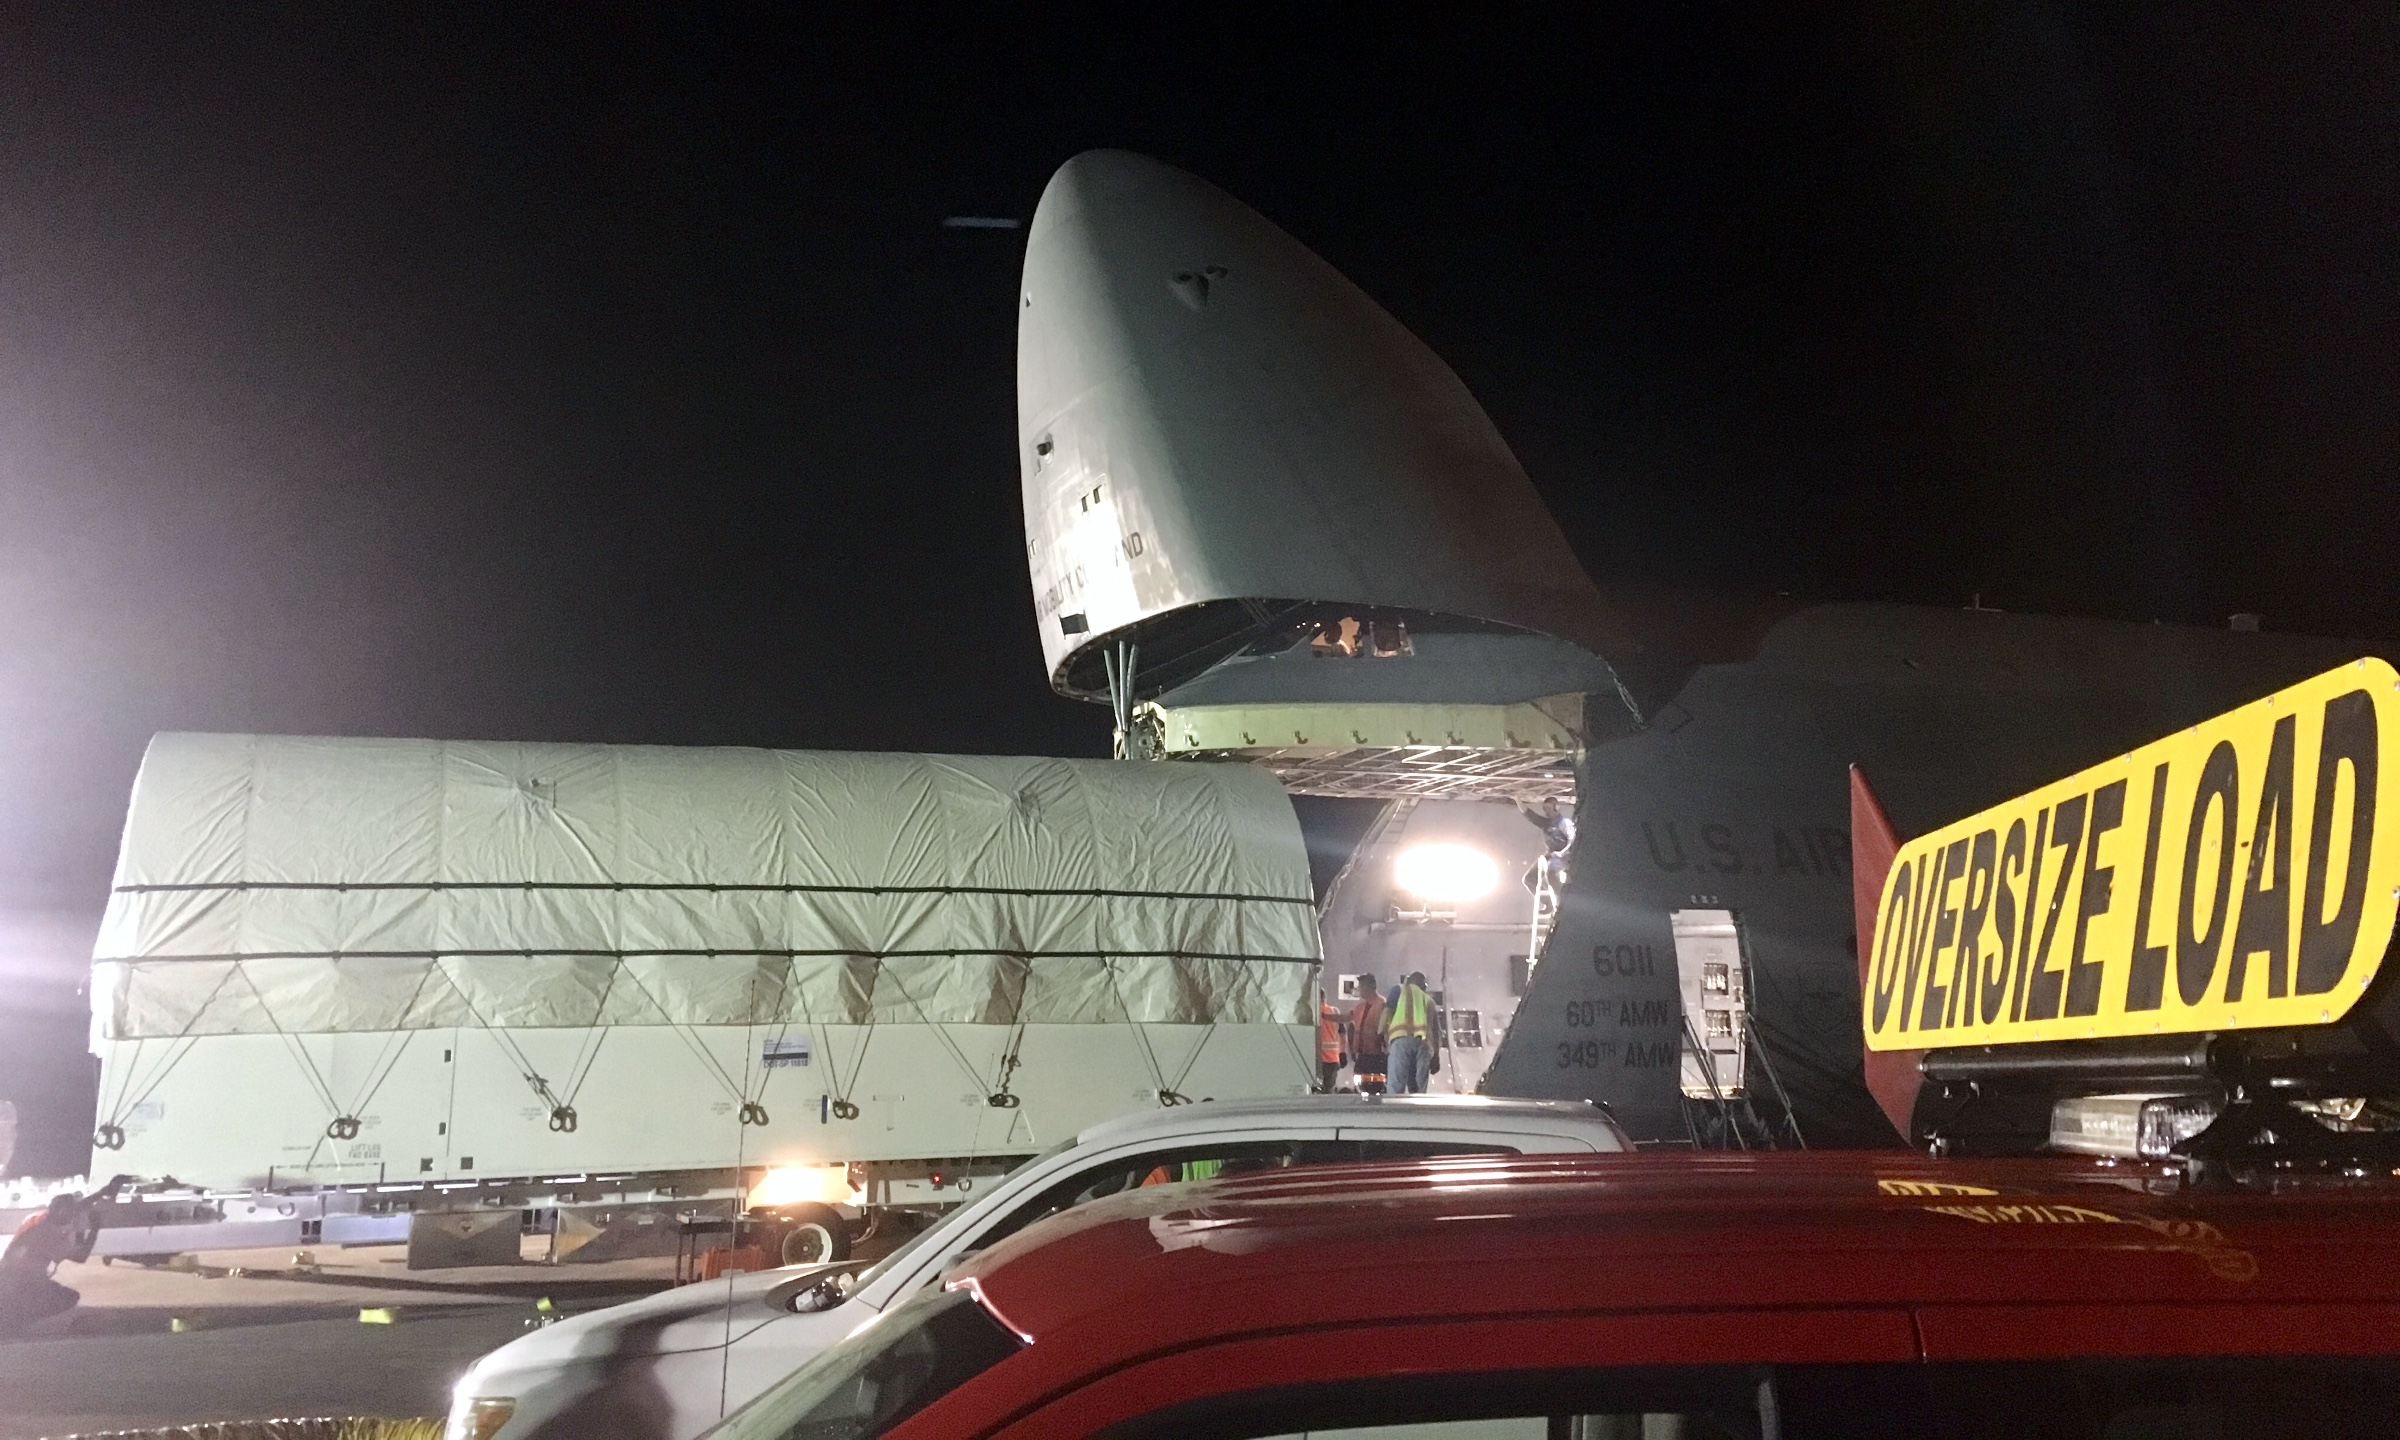 The satellite is completely out of the C-5 as its convoy prepares to depart.